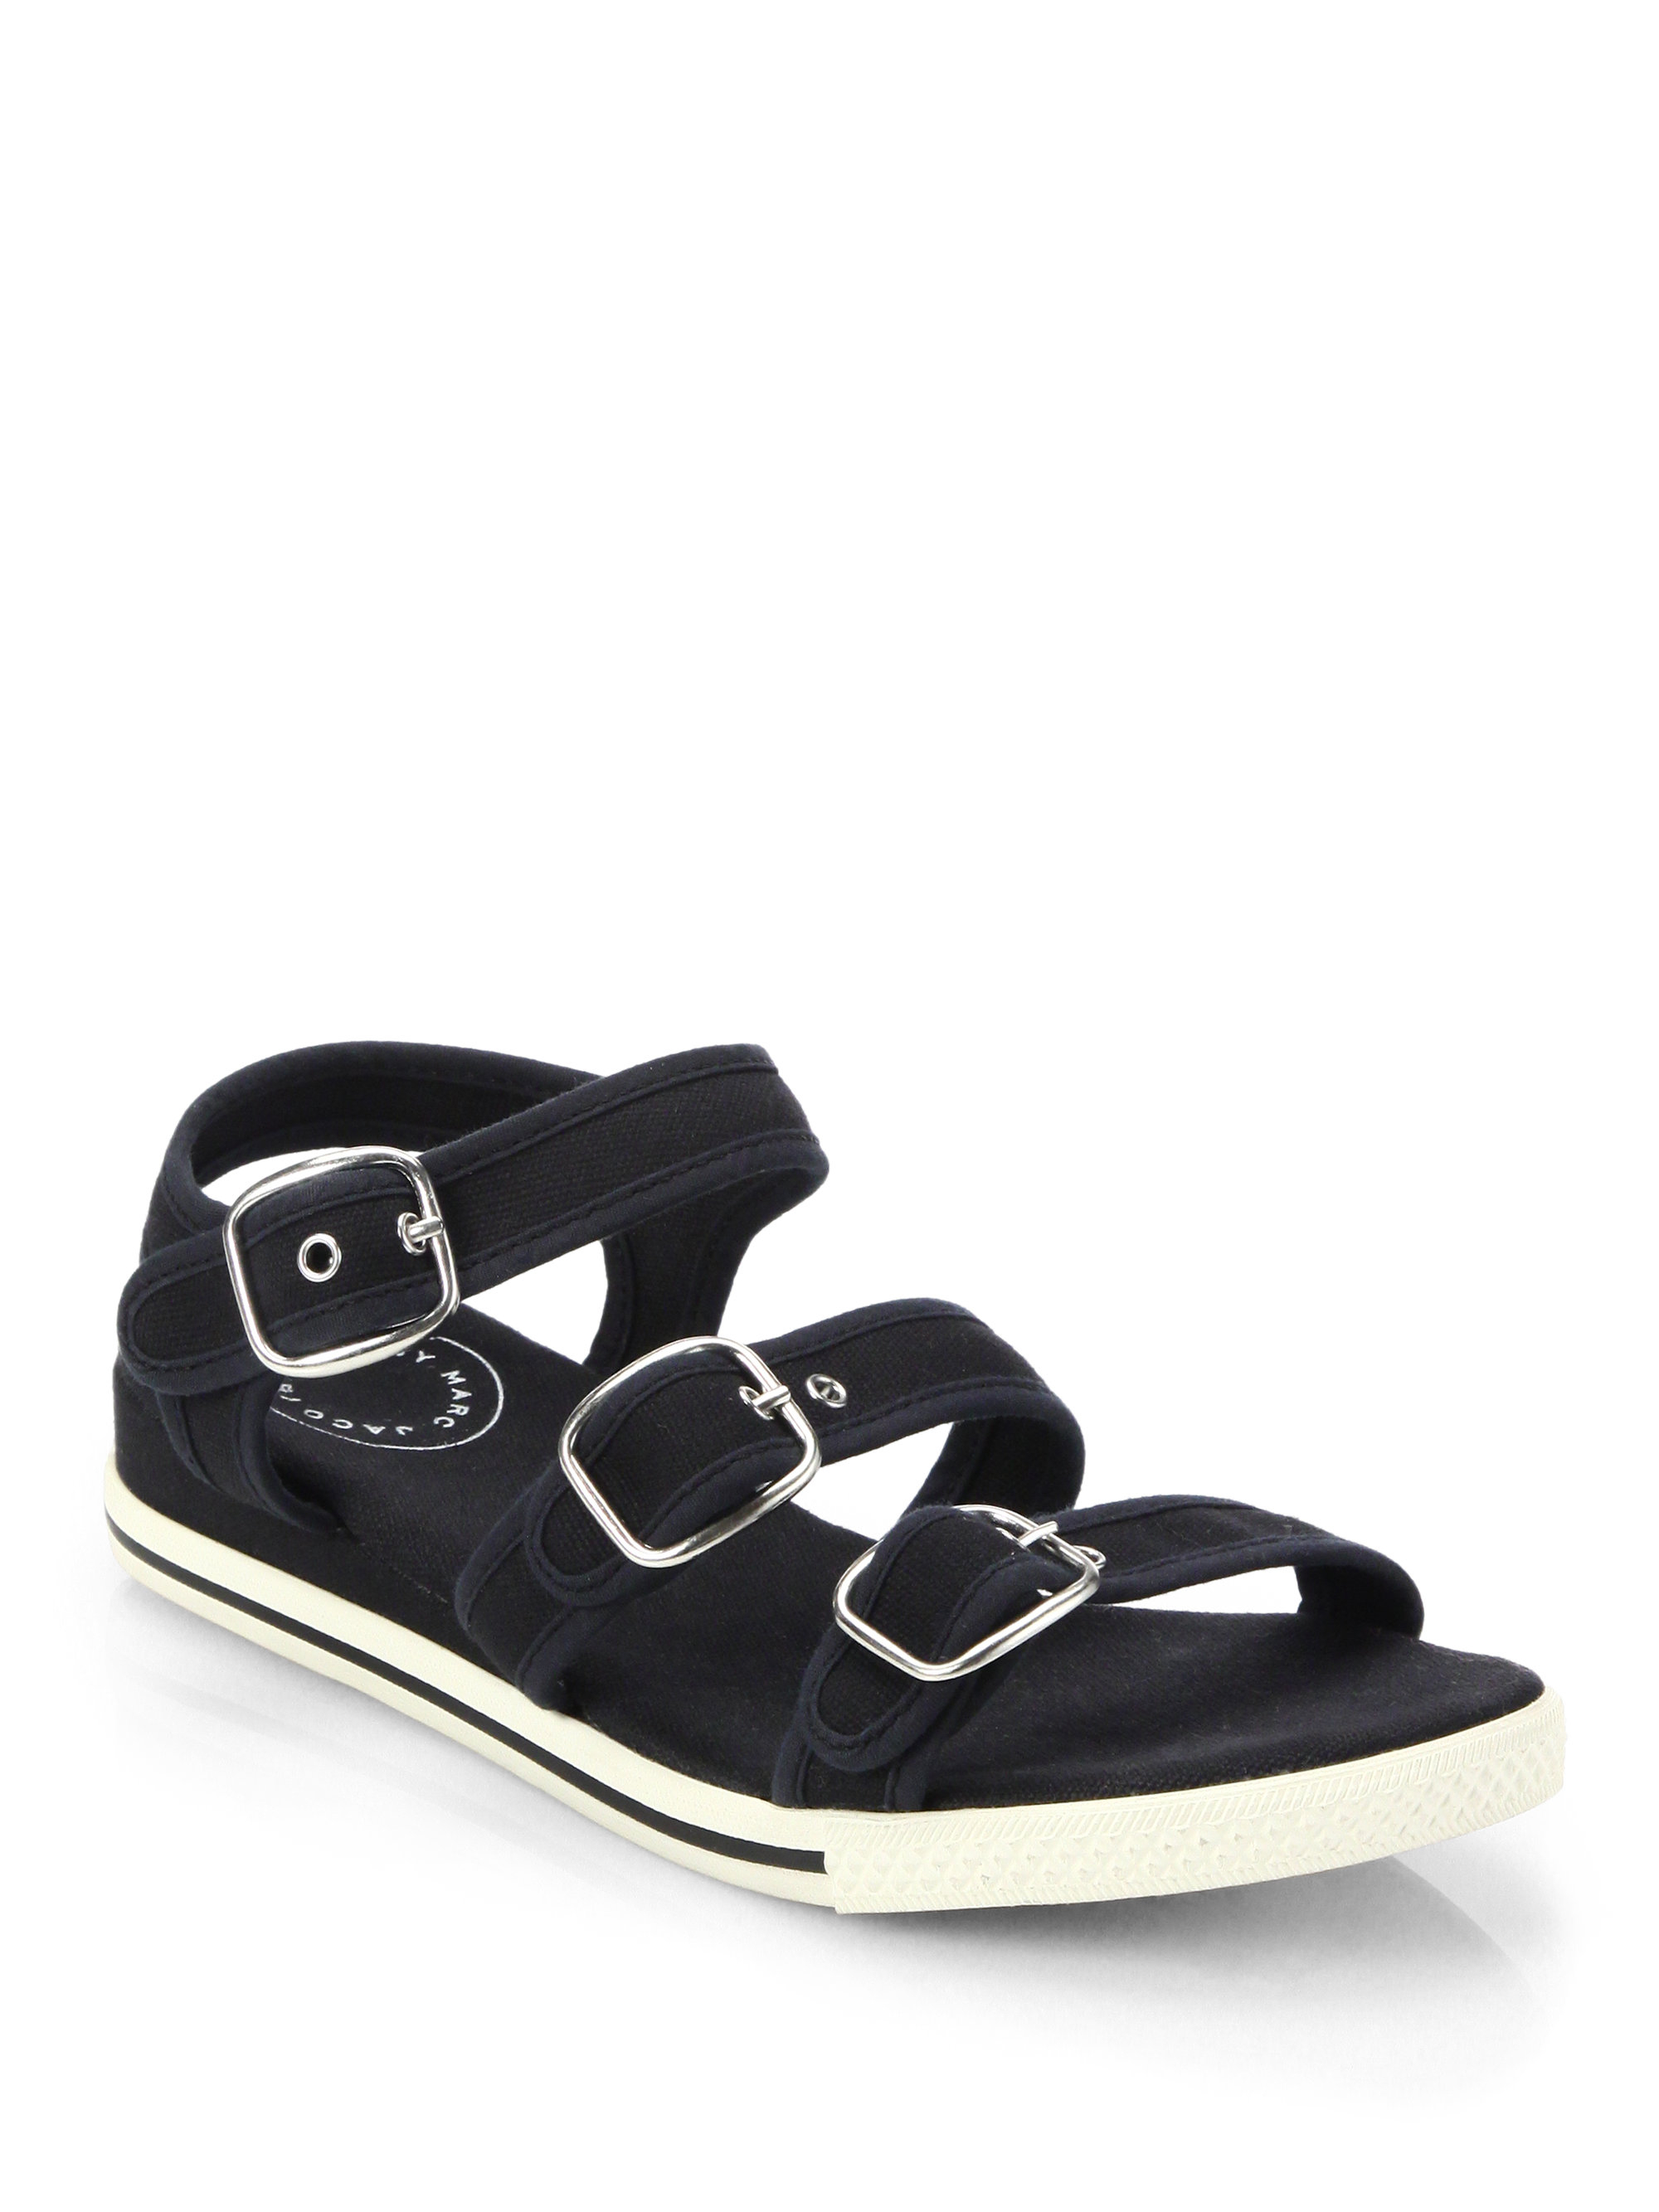 Marc Jacobs Cloth Sandals sWujGHB